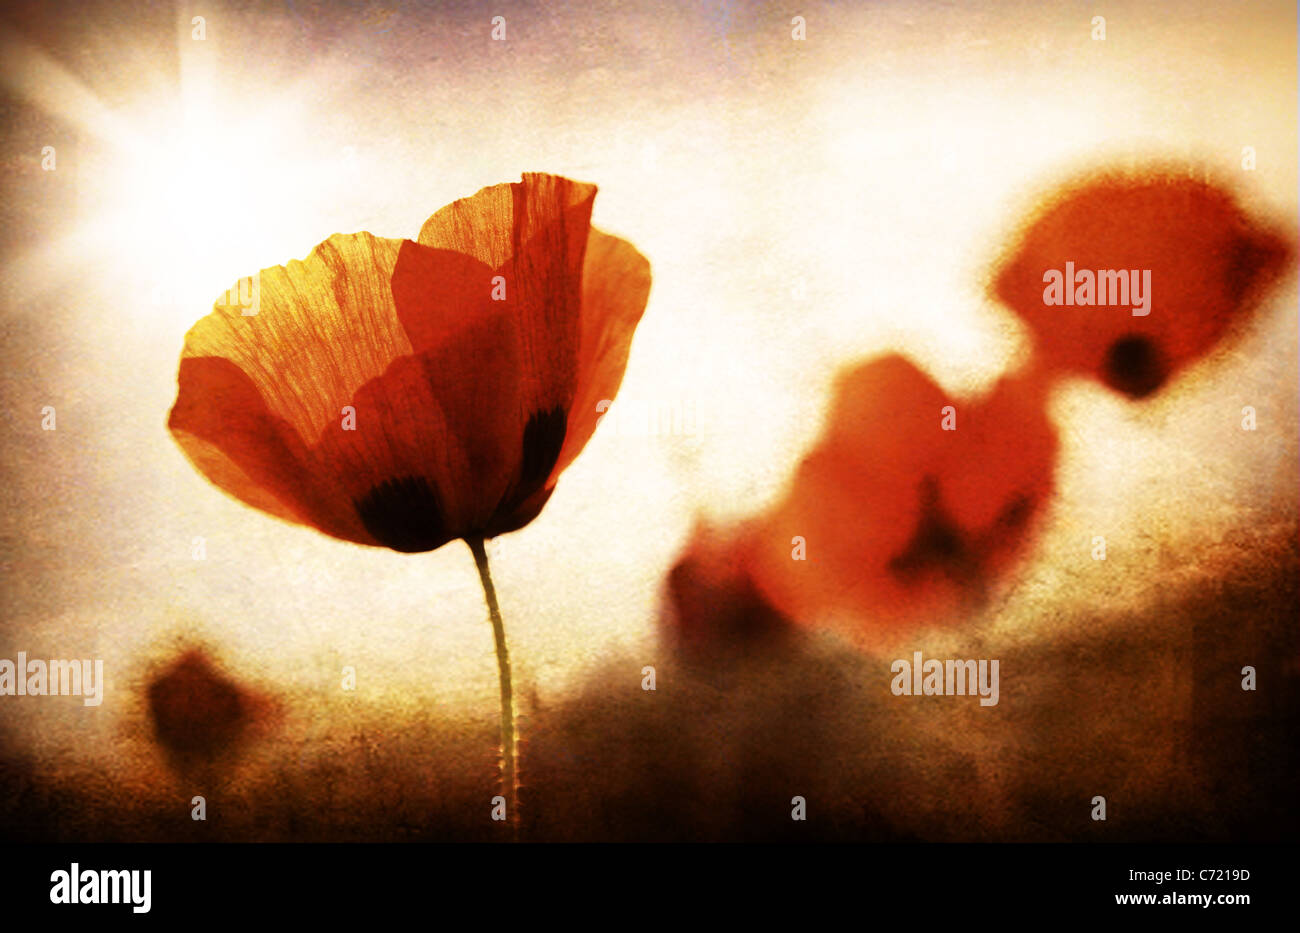 Red poppy flowers meadow, grungy style photo - Stock Image